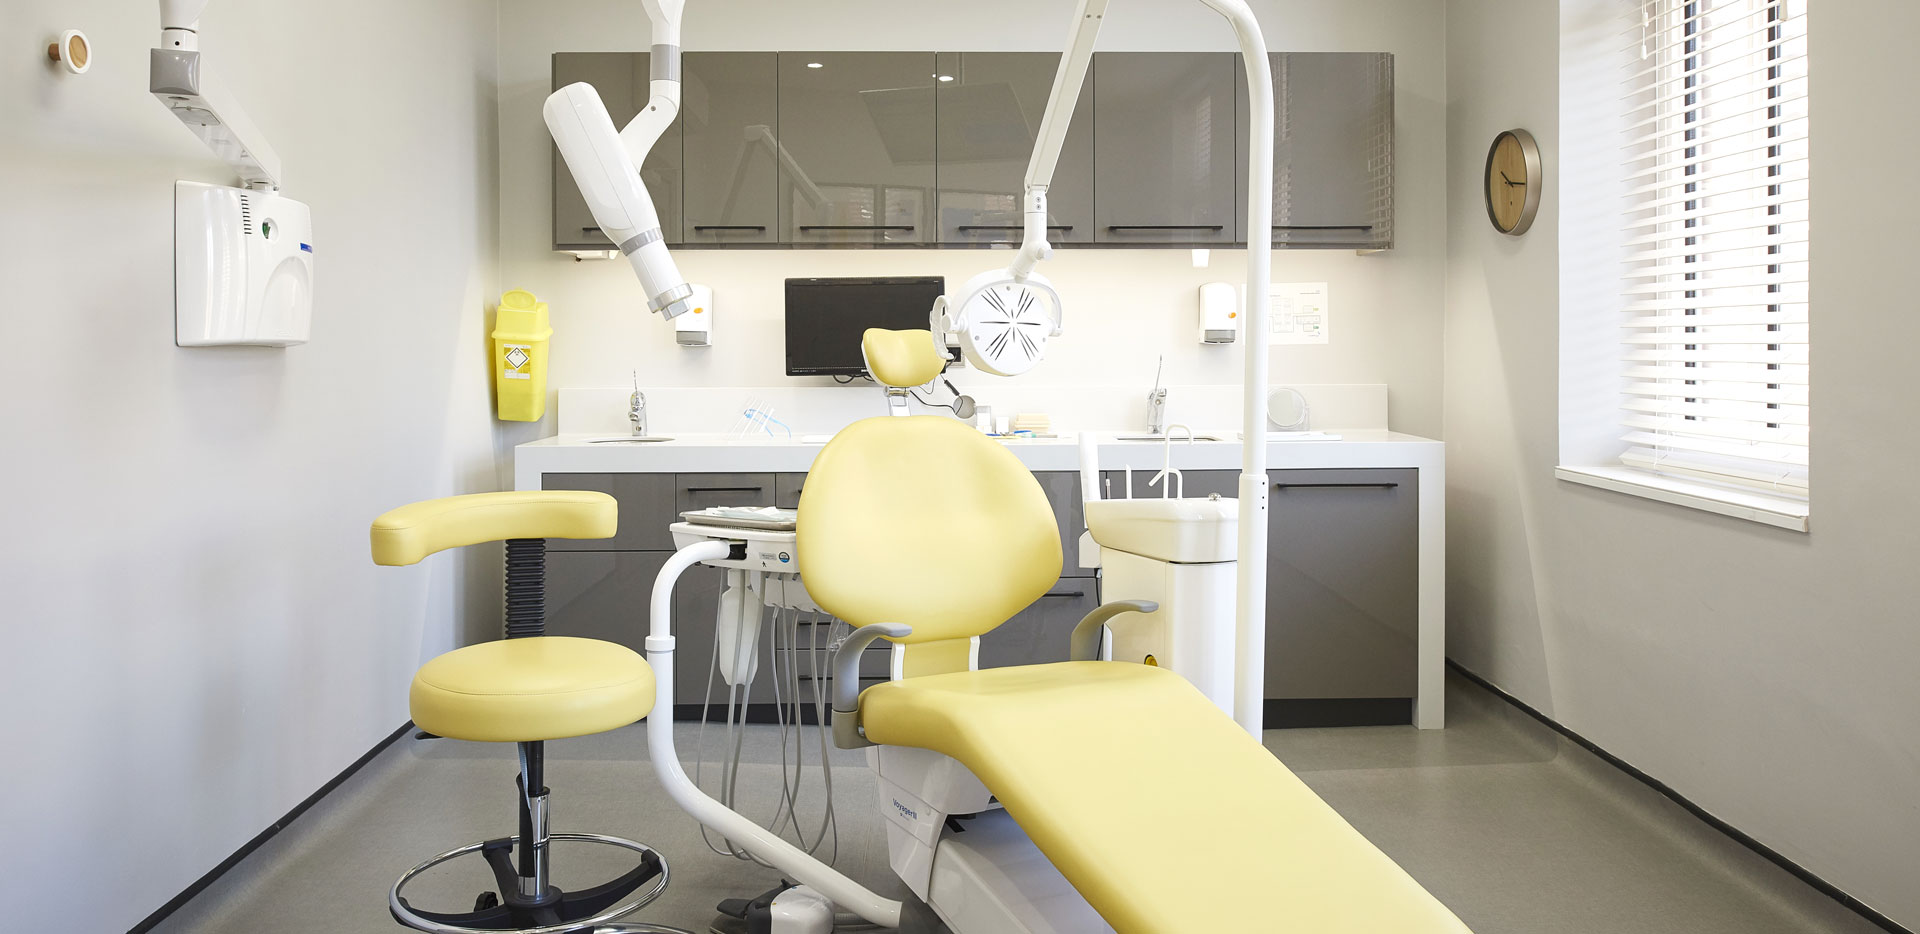 ddpc interior design architects dental practices ddpc design